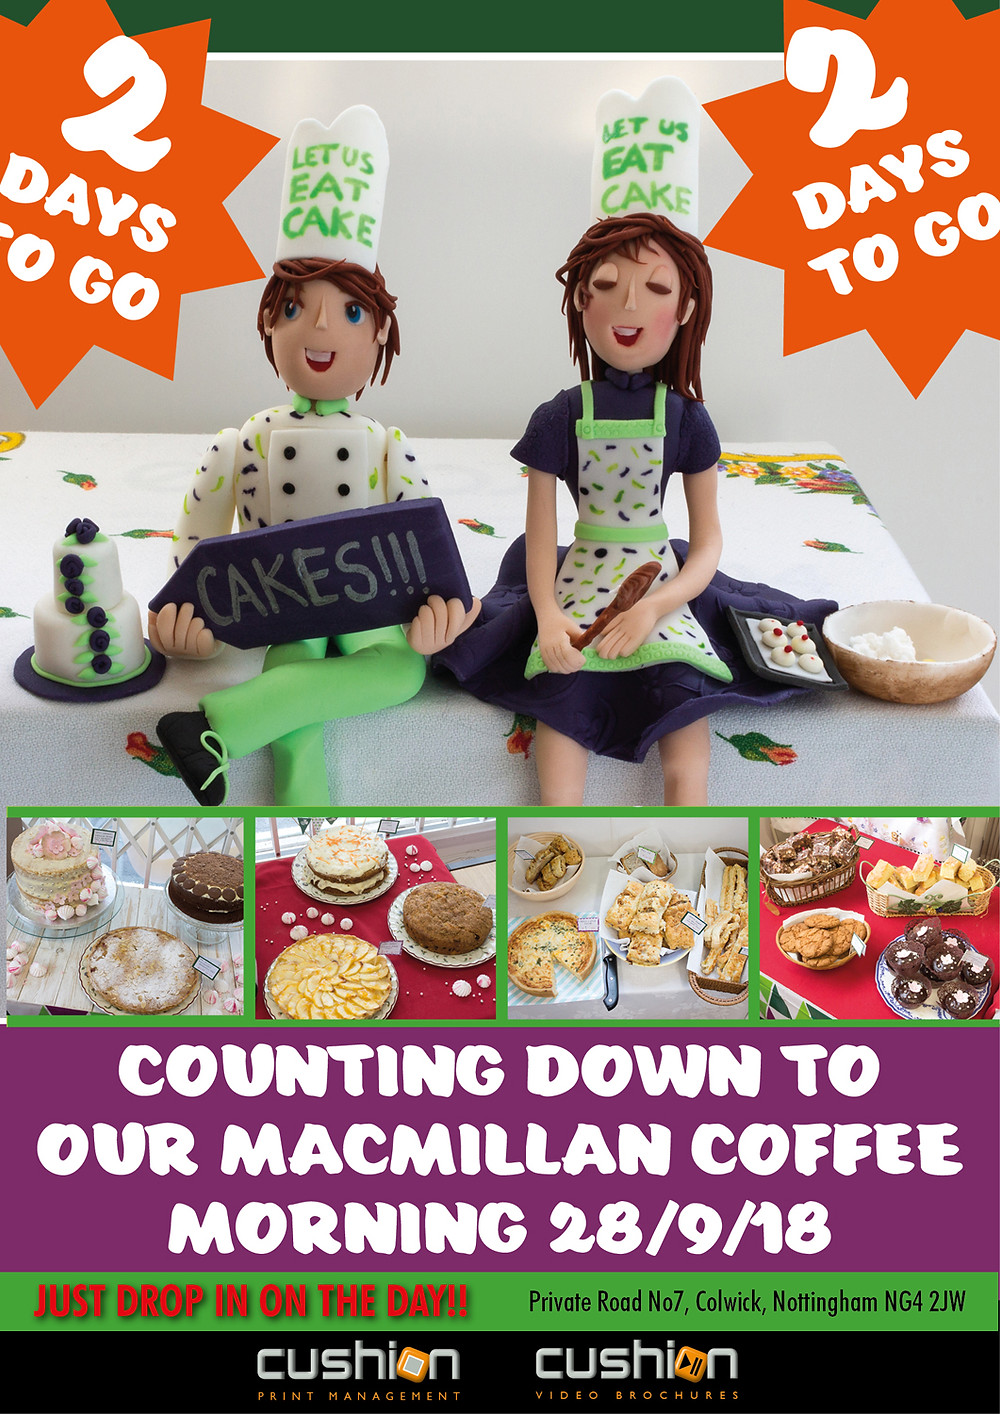 2 Days To Go - We are counting down to our Exciting Macmillan Coffee Morning!